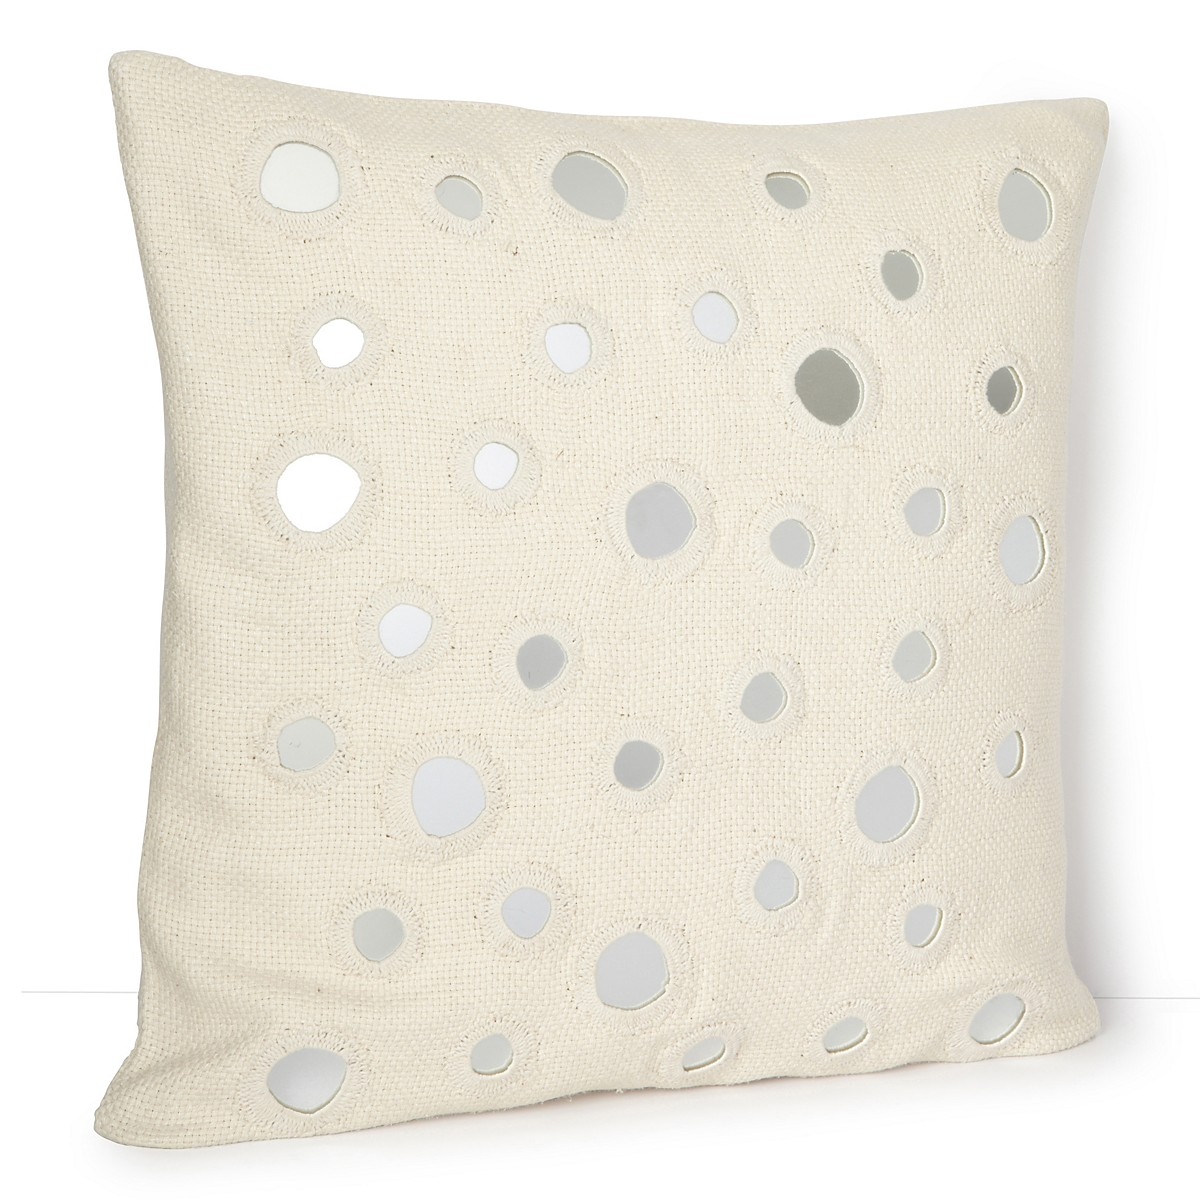 John Robshaw Pillows | John Robshaw Sample Sale | Target Stores Bedding